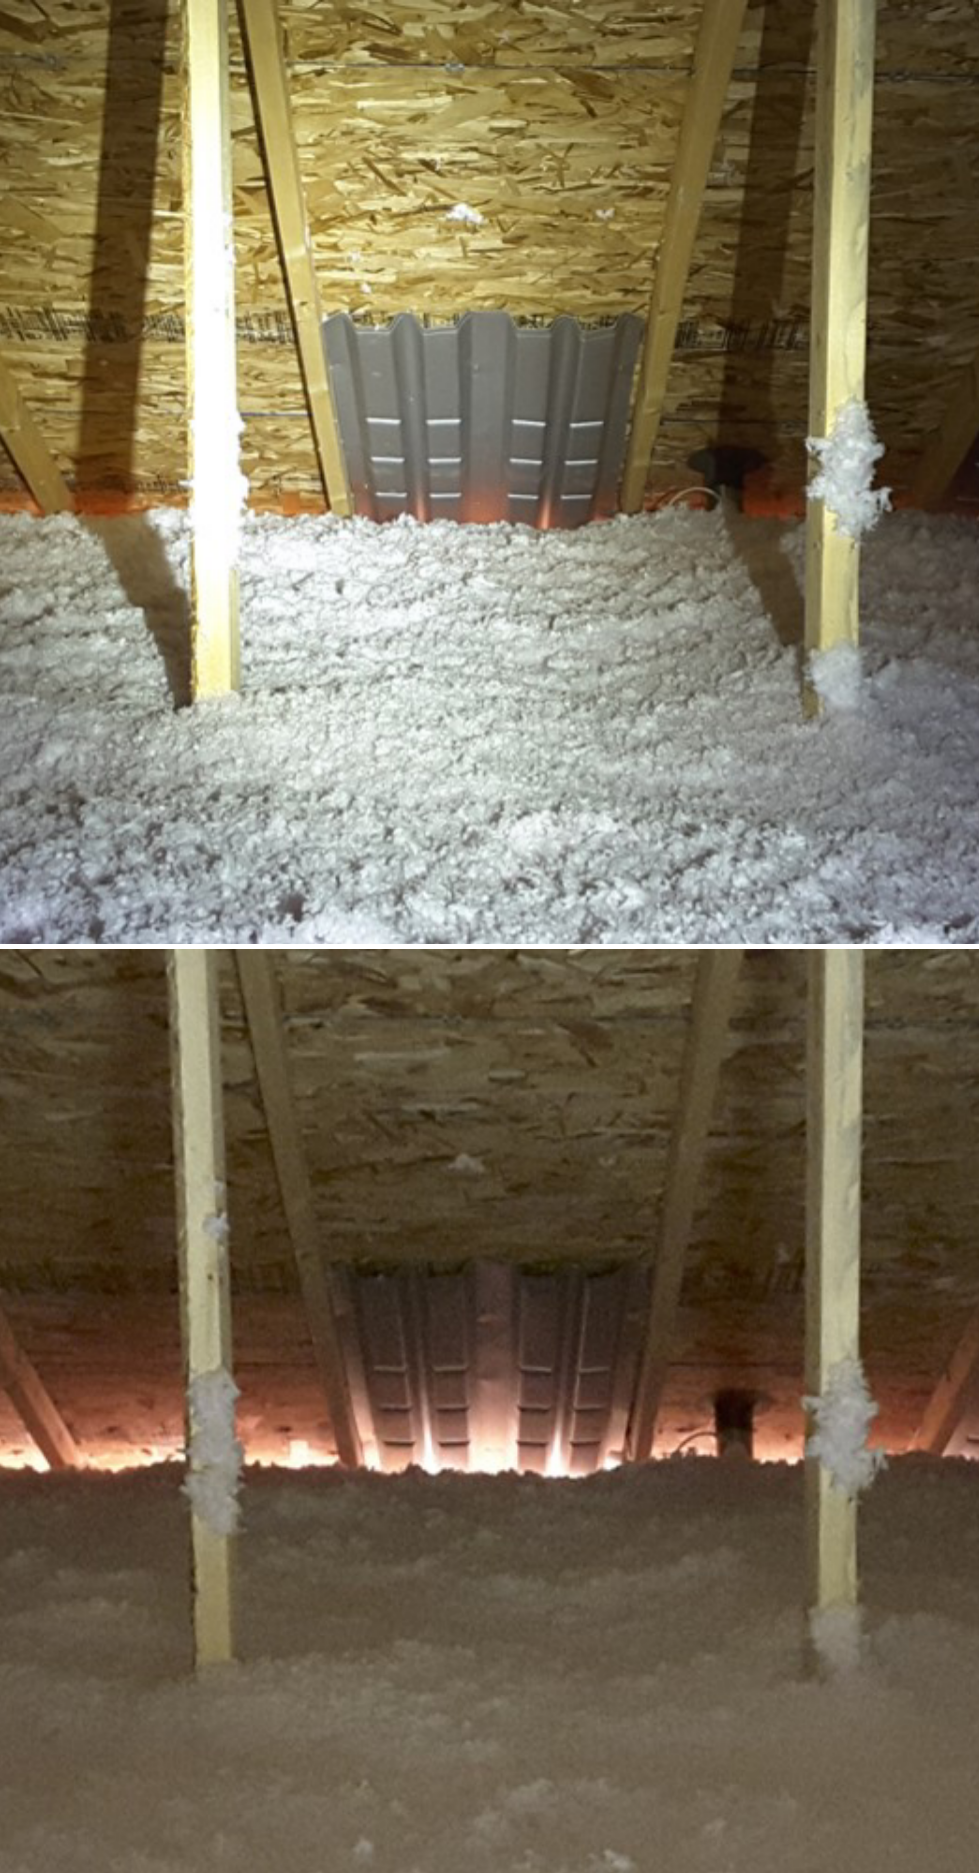 Baffles keep insulation from blocking soffit vents. Proper insulation and ventilation in your attic are important for moisture control and to reduce energy loss.